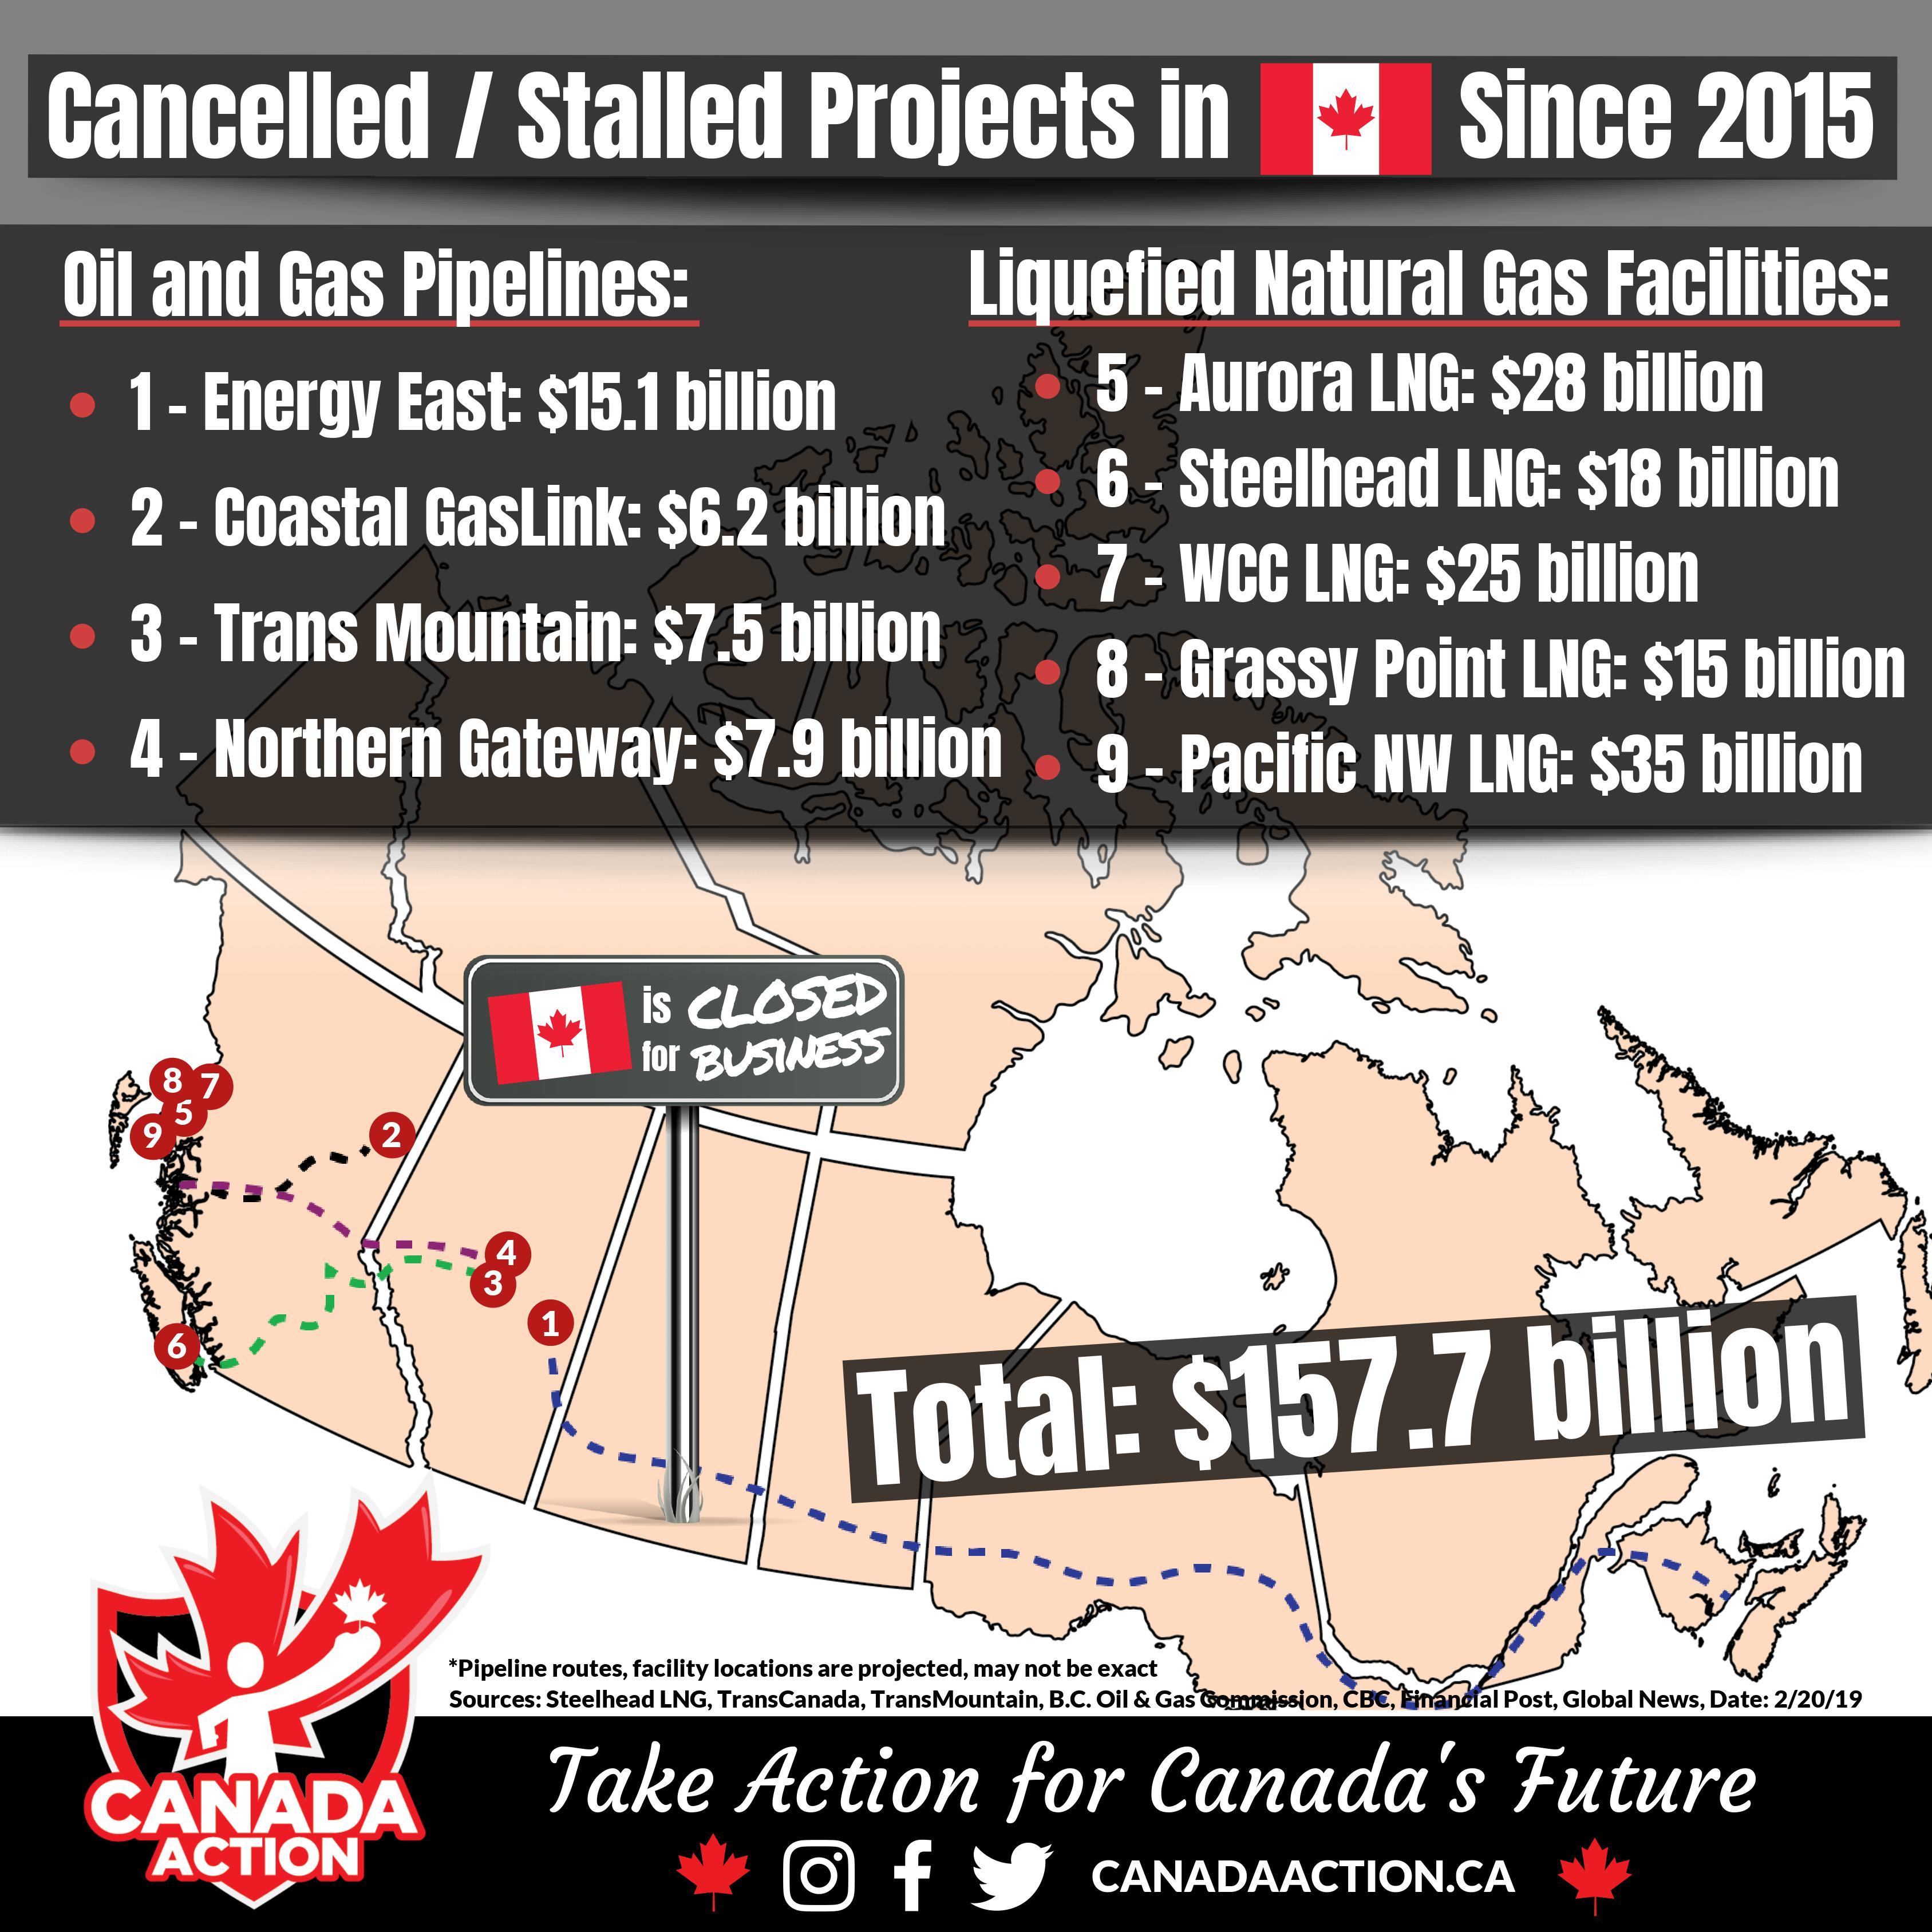 Cancelled and Stalled Energy Projects in Canada Since 2015